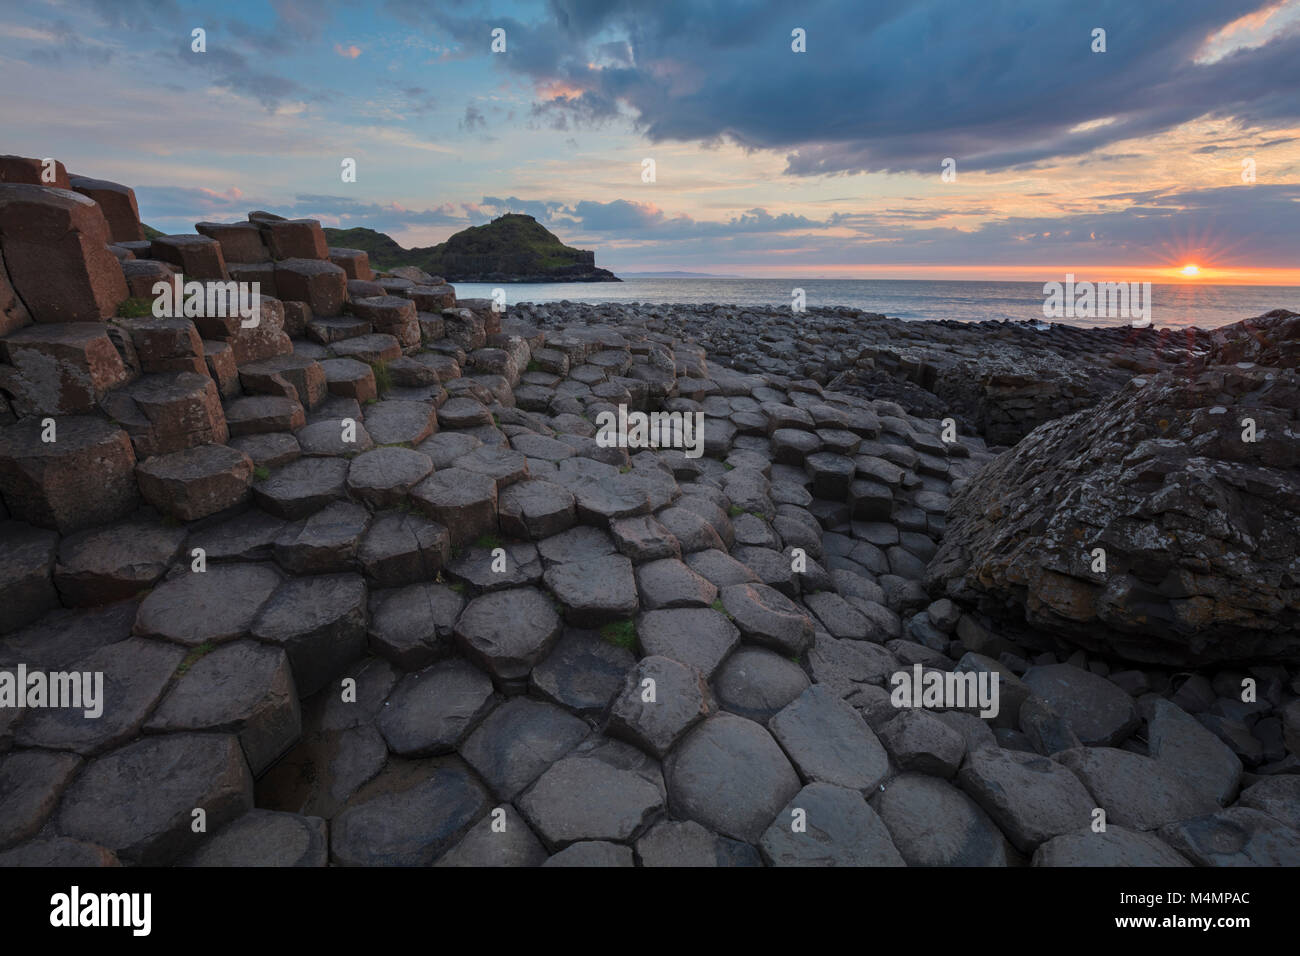 Sunset at the Giant's Causeway, Country Antrim, Northern Ireland. - Stock Image